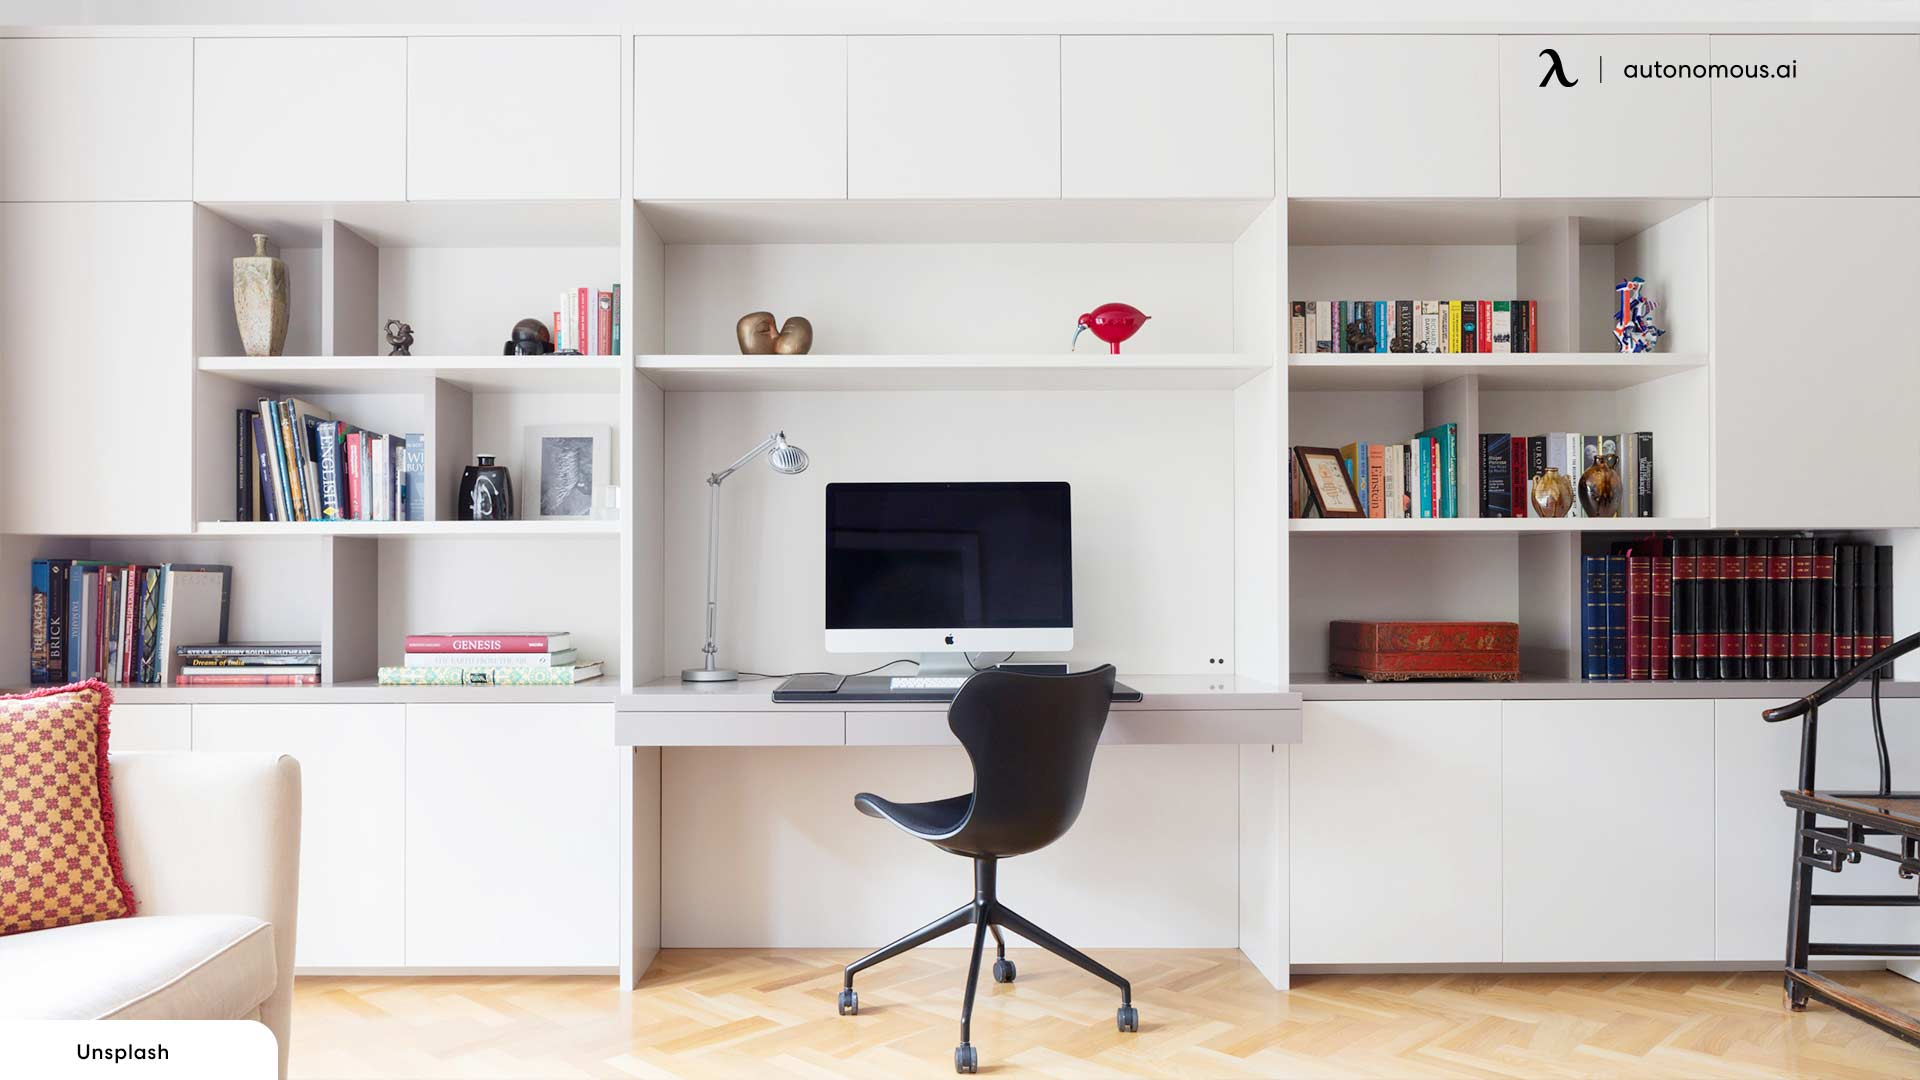 Home and office setting as productivity tips for hybrid work